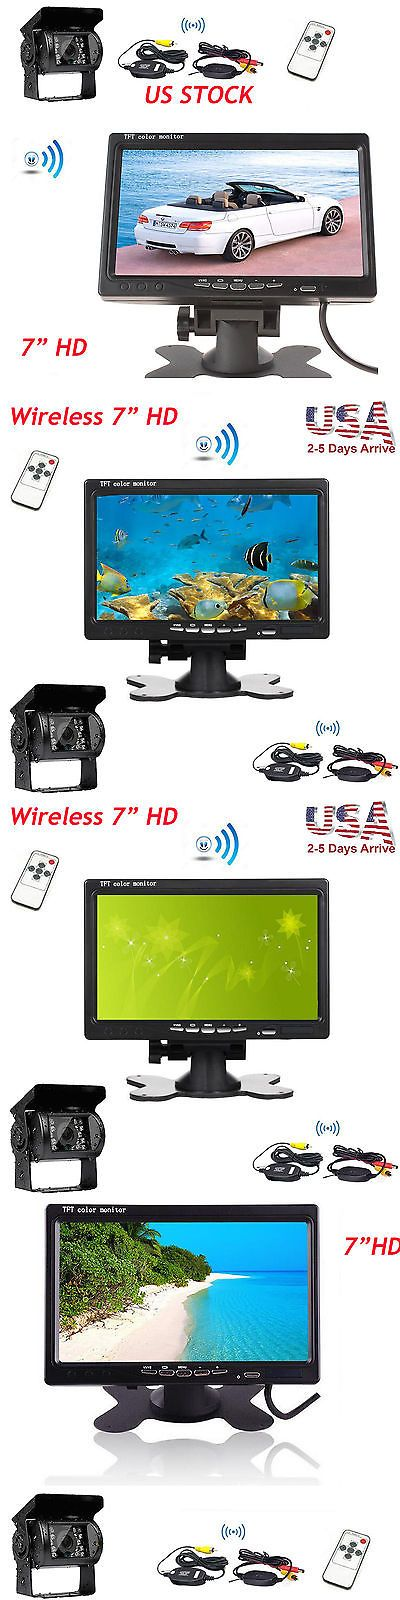 Rear View Monitors Cams and Kits: 7 Tft Lcd Car Rear View Hd Color Monitor+Wireless Backup Camera For Truck Rv -> BUY IT NOW ONLY: $56 on eBay!